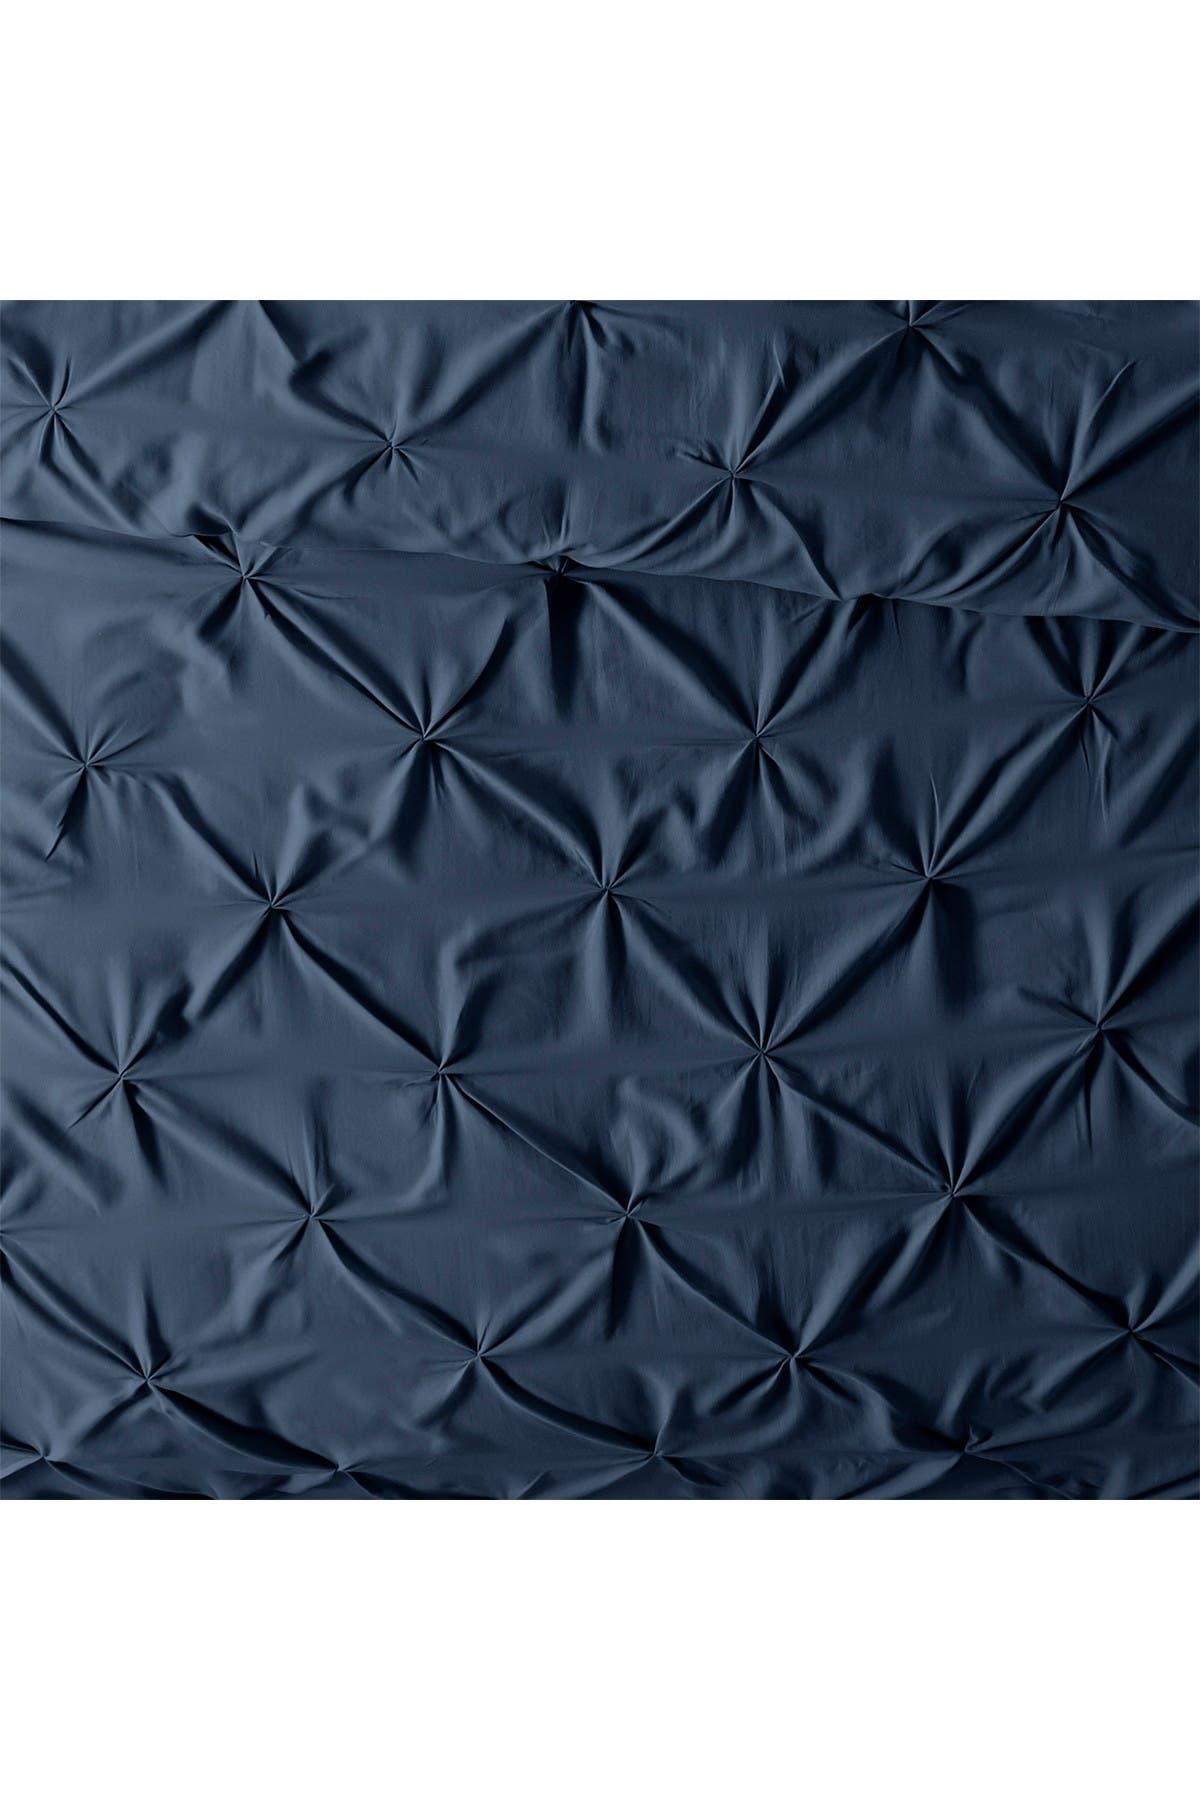 Image of IENJOY HOME Home Collection Premium Ultra Soft 3-Piece Pinch Pleat Duvet Cover Set - Navy - King / California King